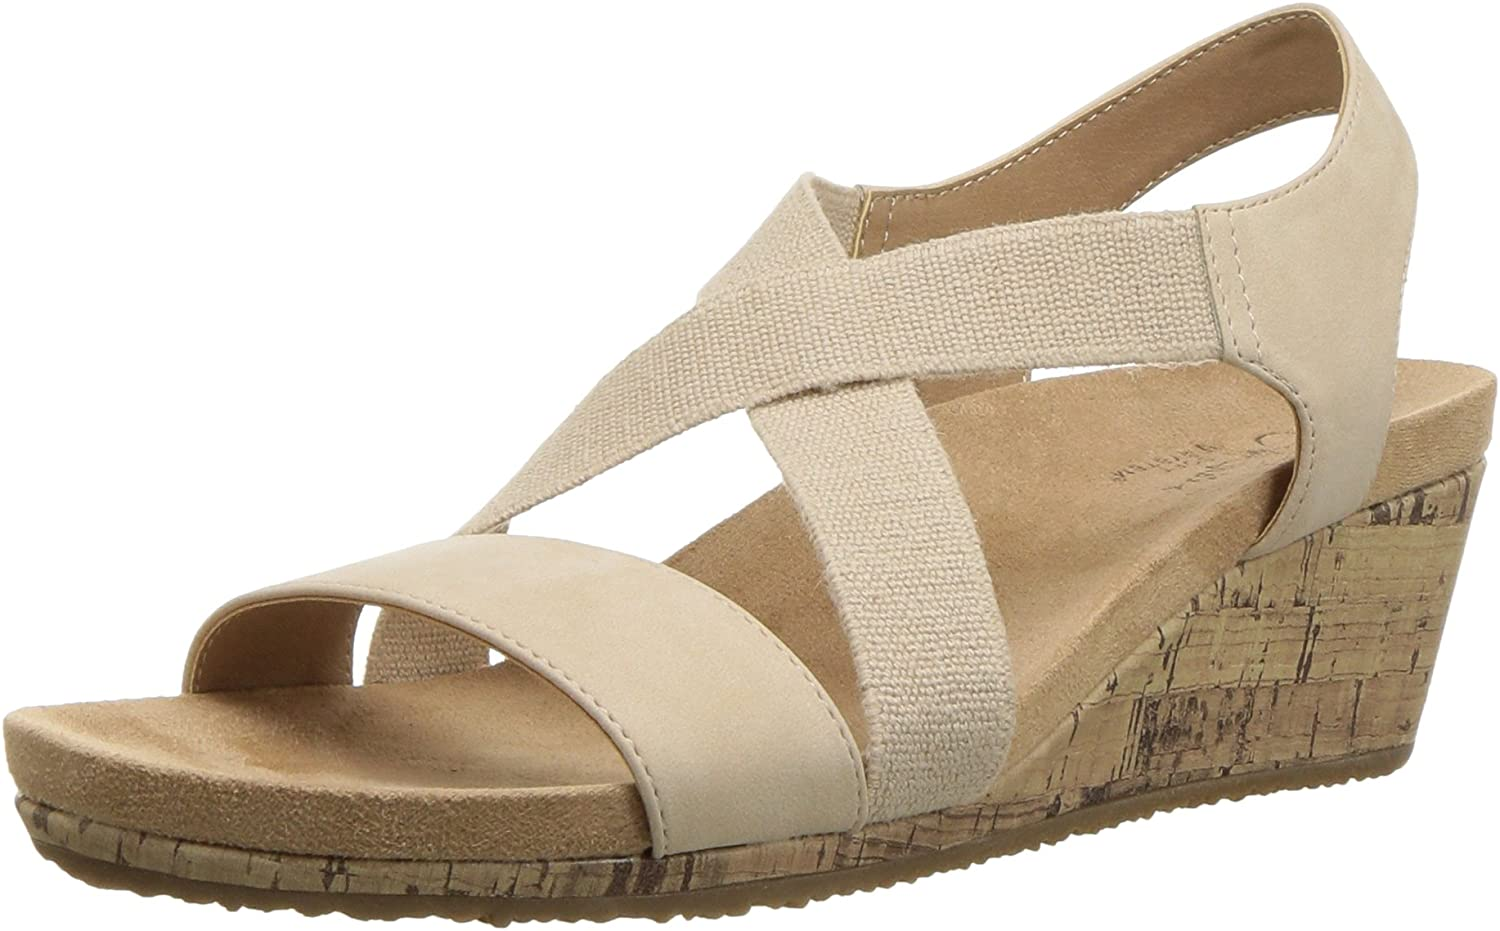 LifeStride Women's Mexico Max 85% OFF Sandal Wedge Popularity